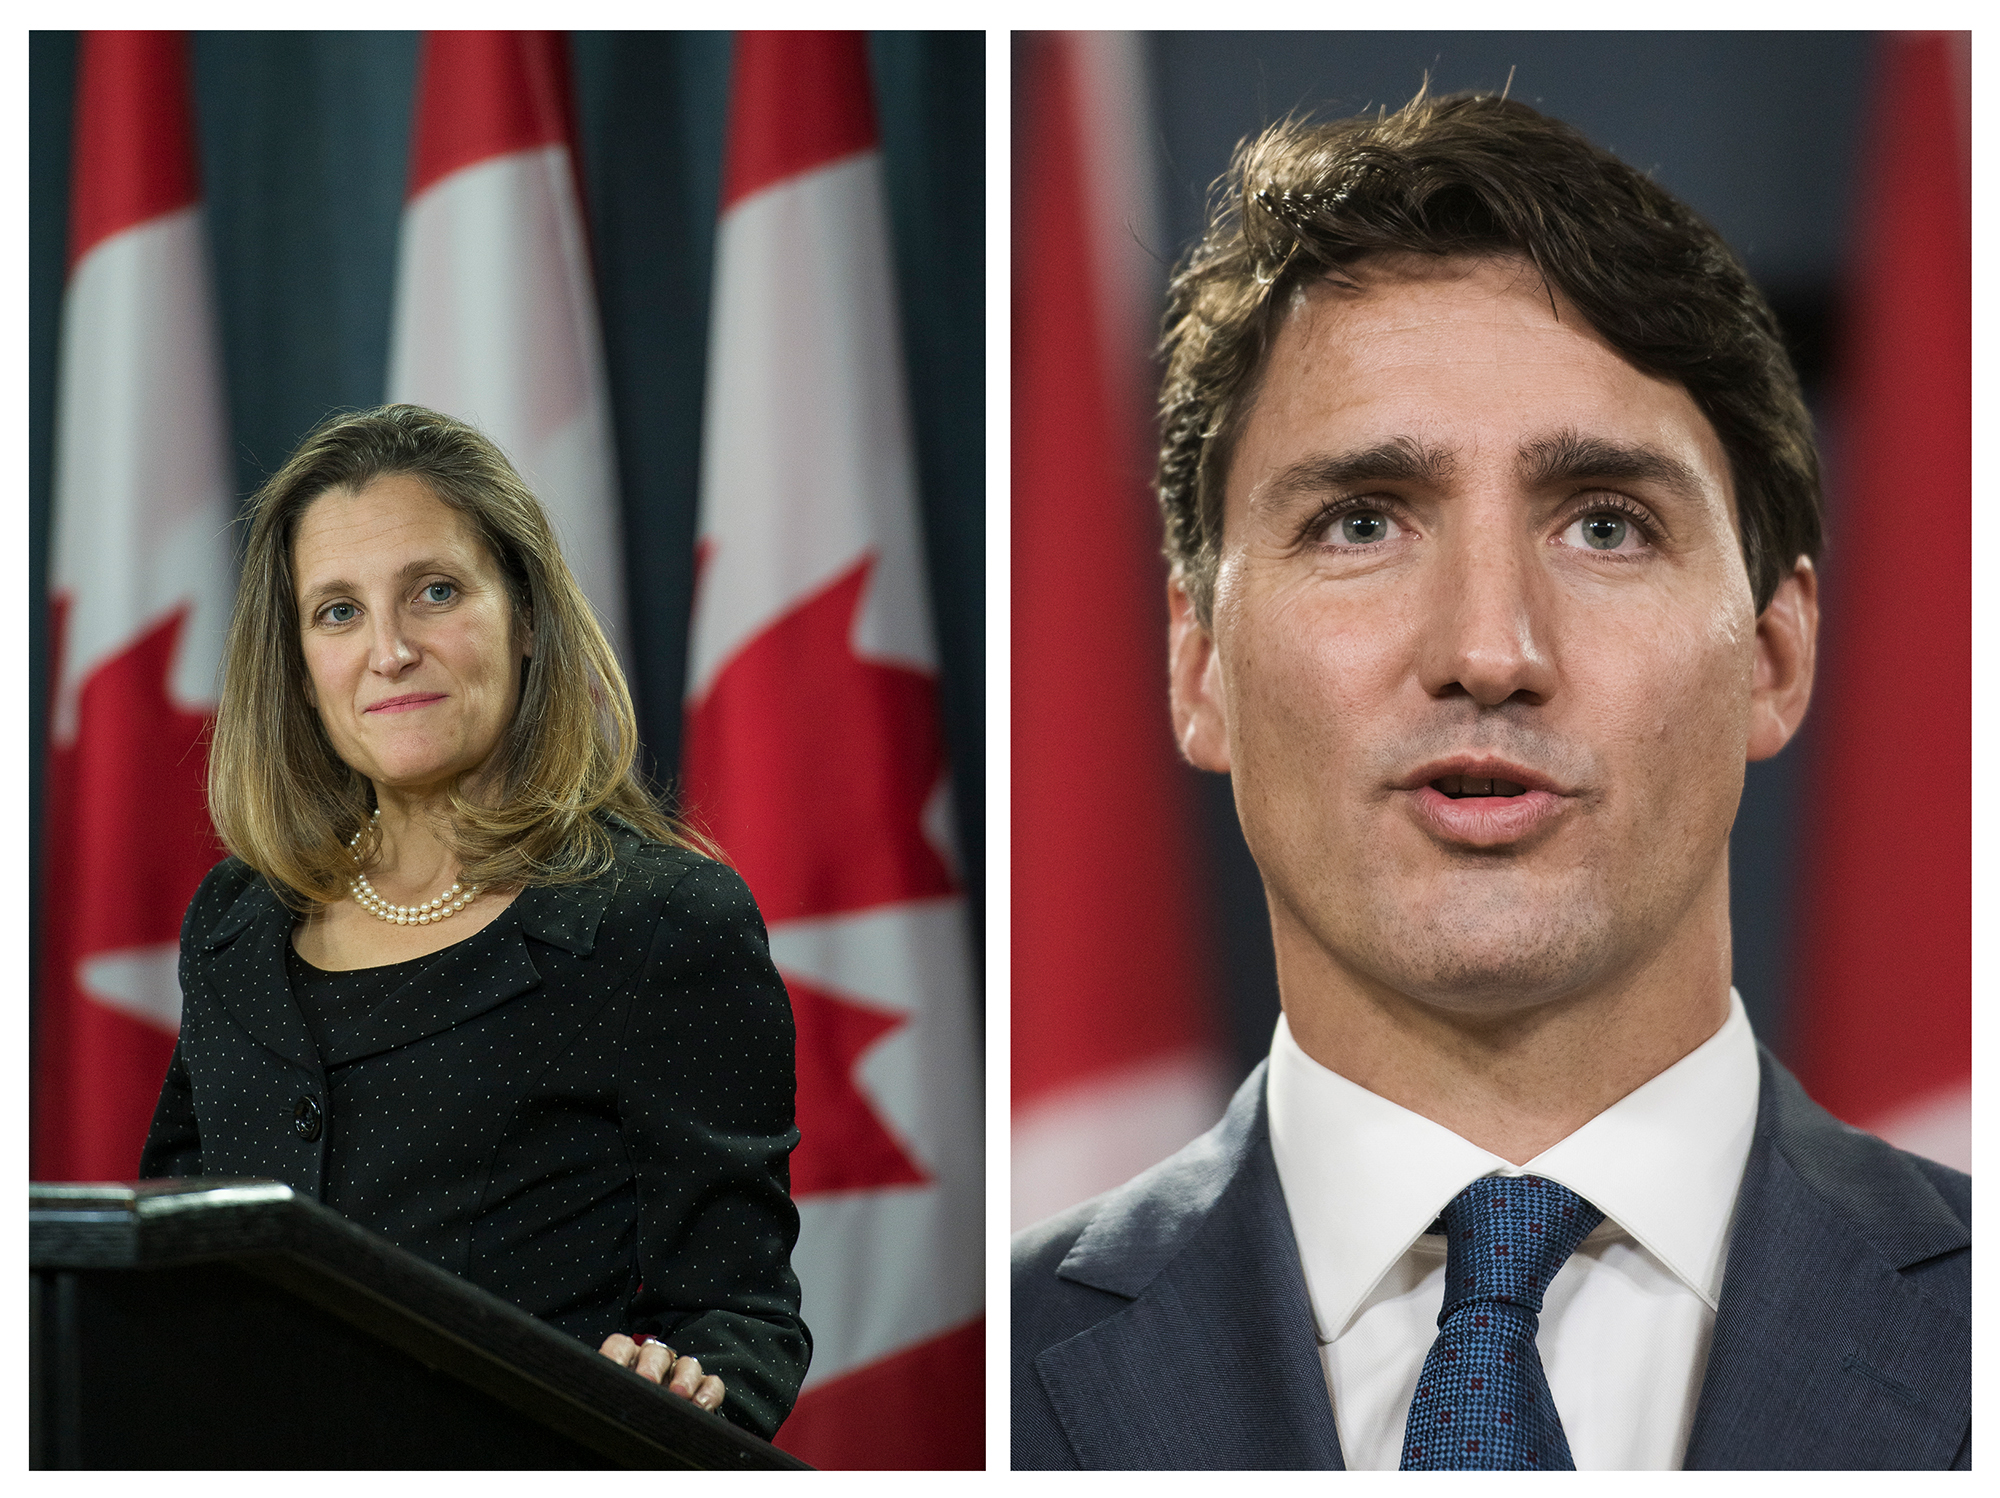 Minister of foreign affairs Chrystia Freeland and Prime Minister Justin Trudeau holds a press conference after the NAFTA negotiations with the United States. On assignment for Maclean's. Unpublished.